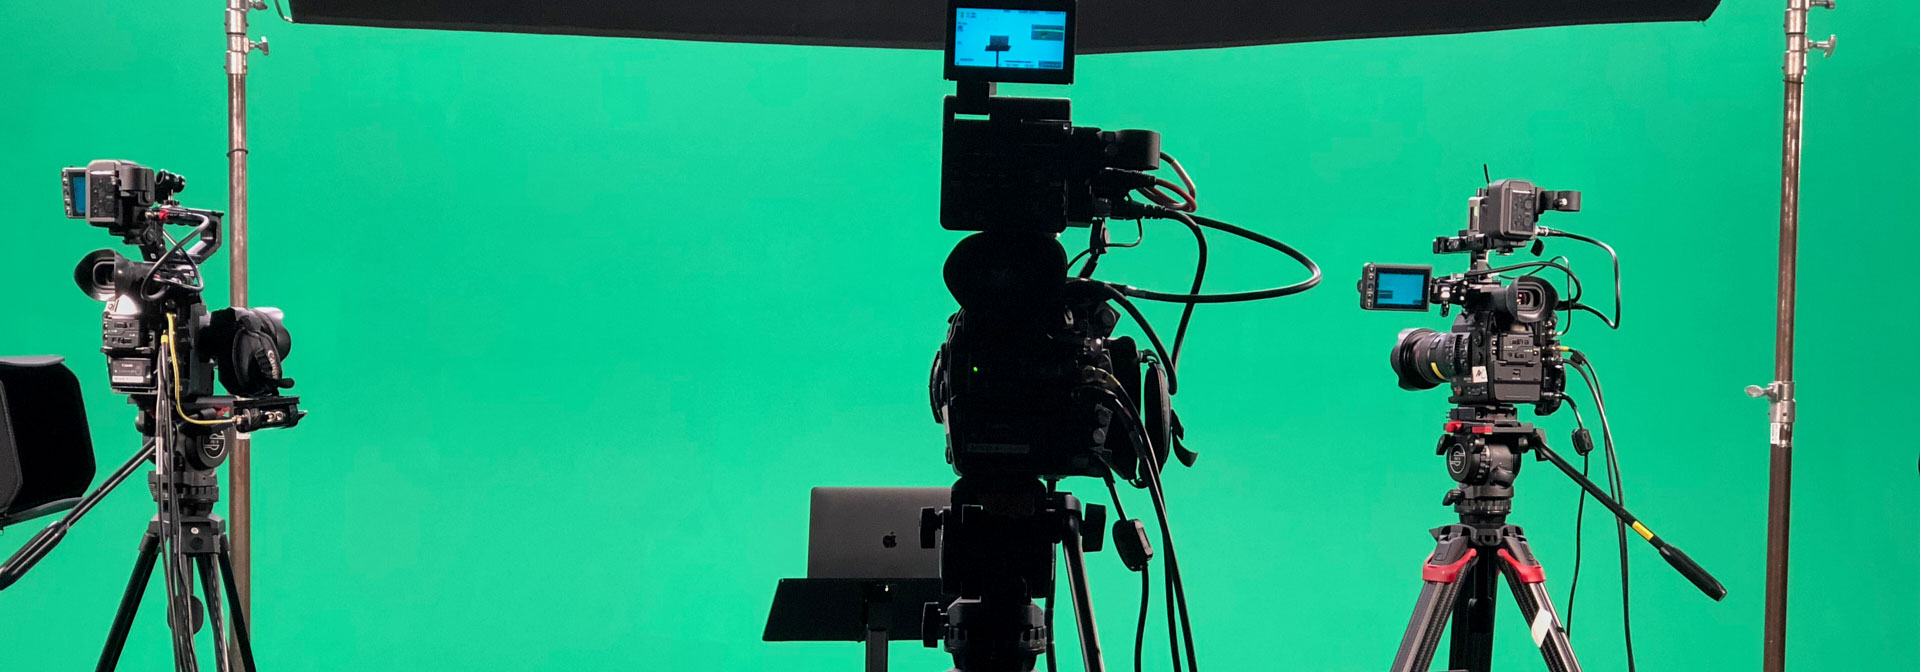 3-Camera Corporate Green Screen